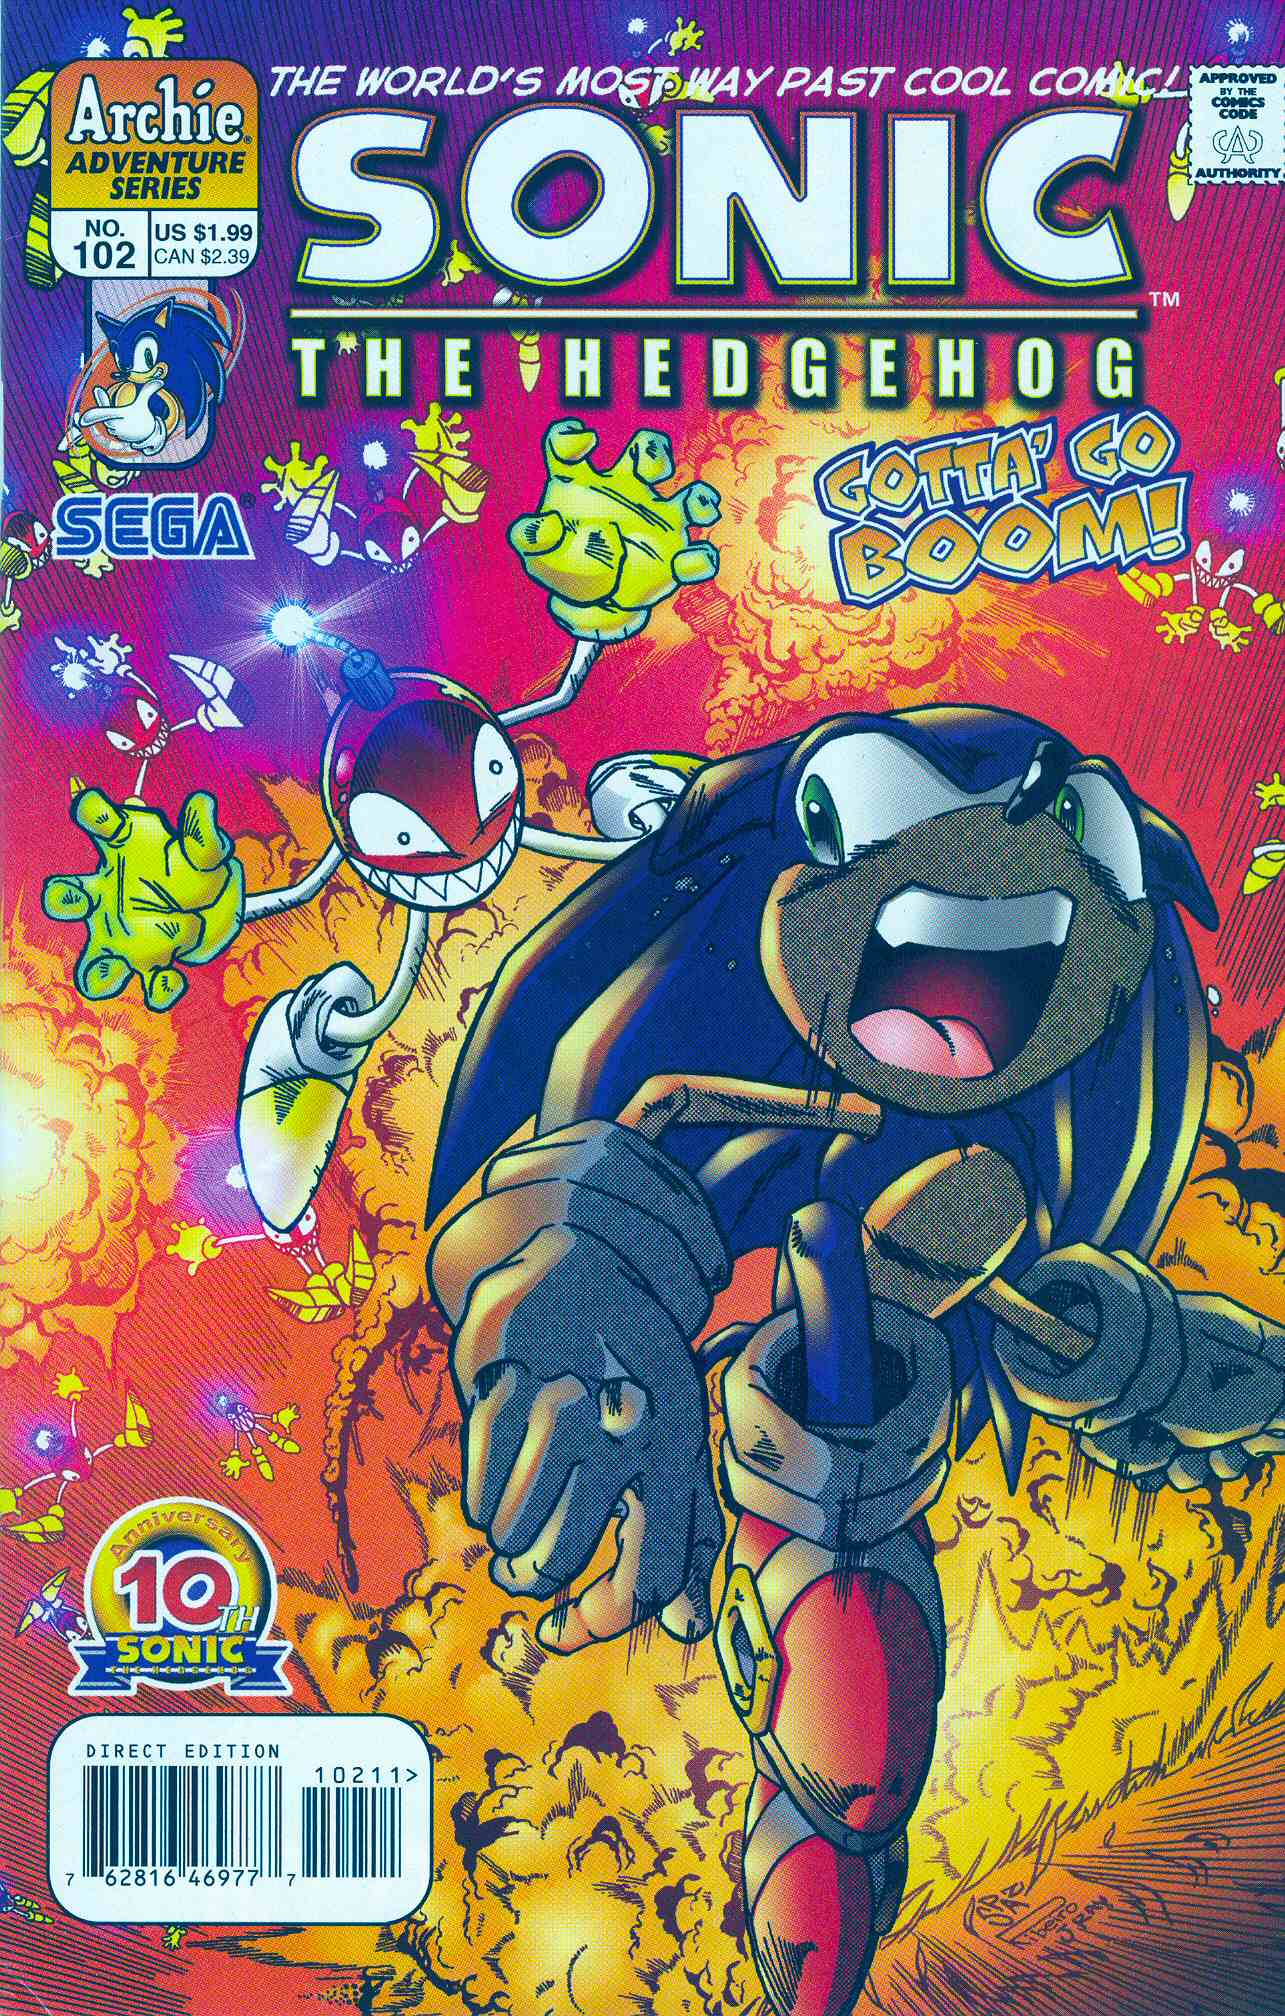 Sonic - Archie Adventure Series December 2001 Comic cover page